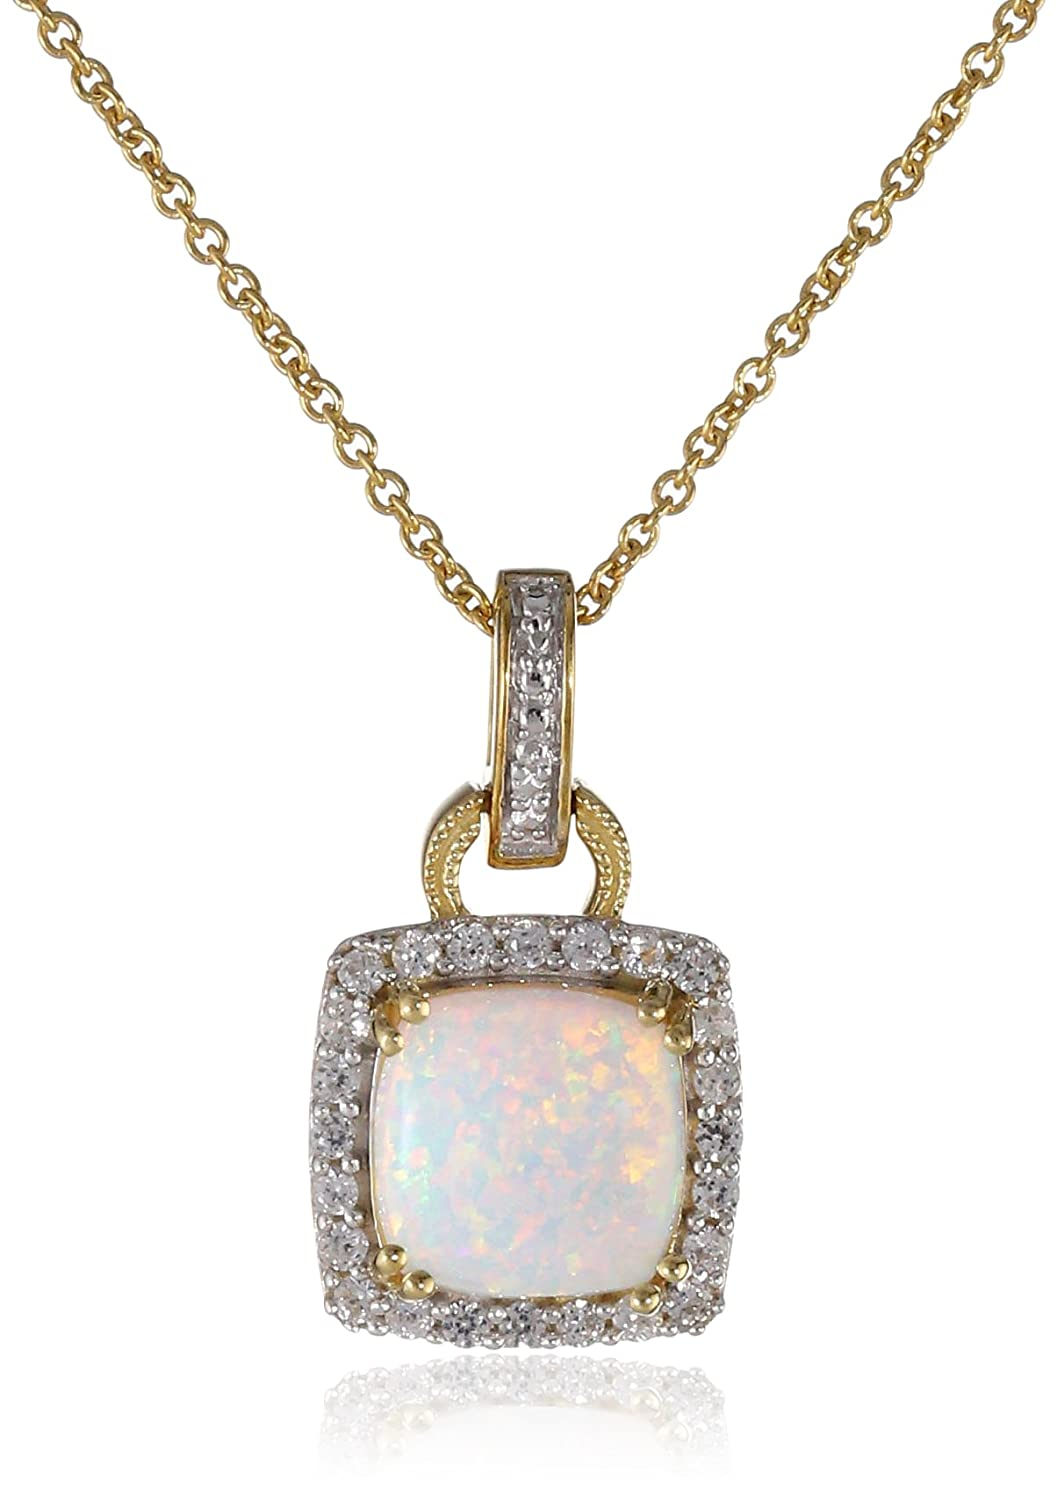 Sterling Silver Yellow Gold Plated Birthstone with Gemstone and Created White Sapphire Pendant Necklace 18